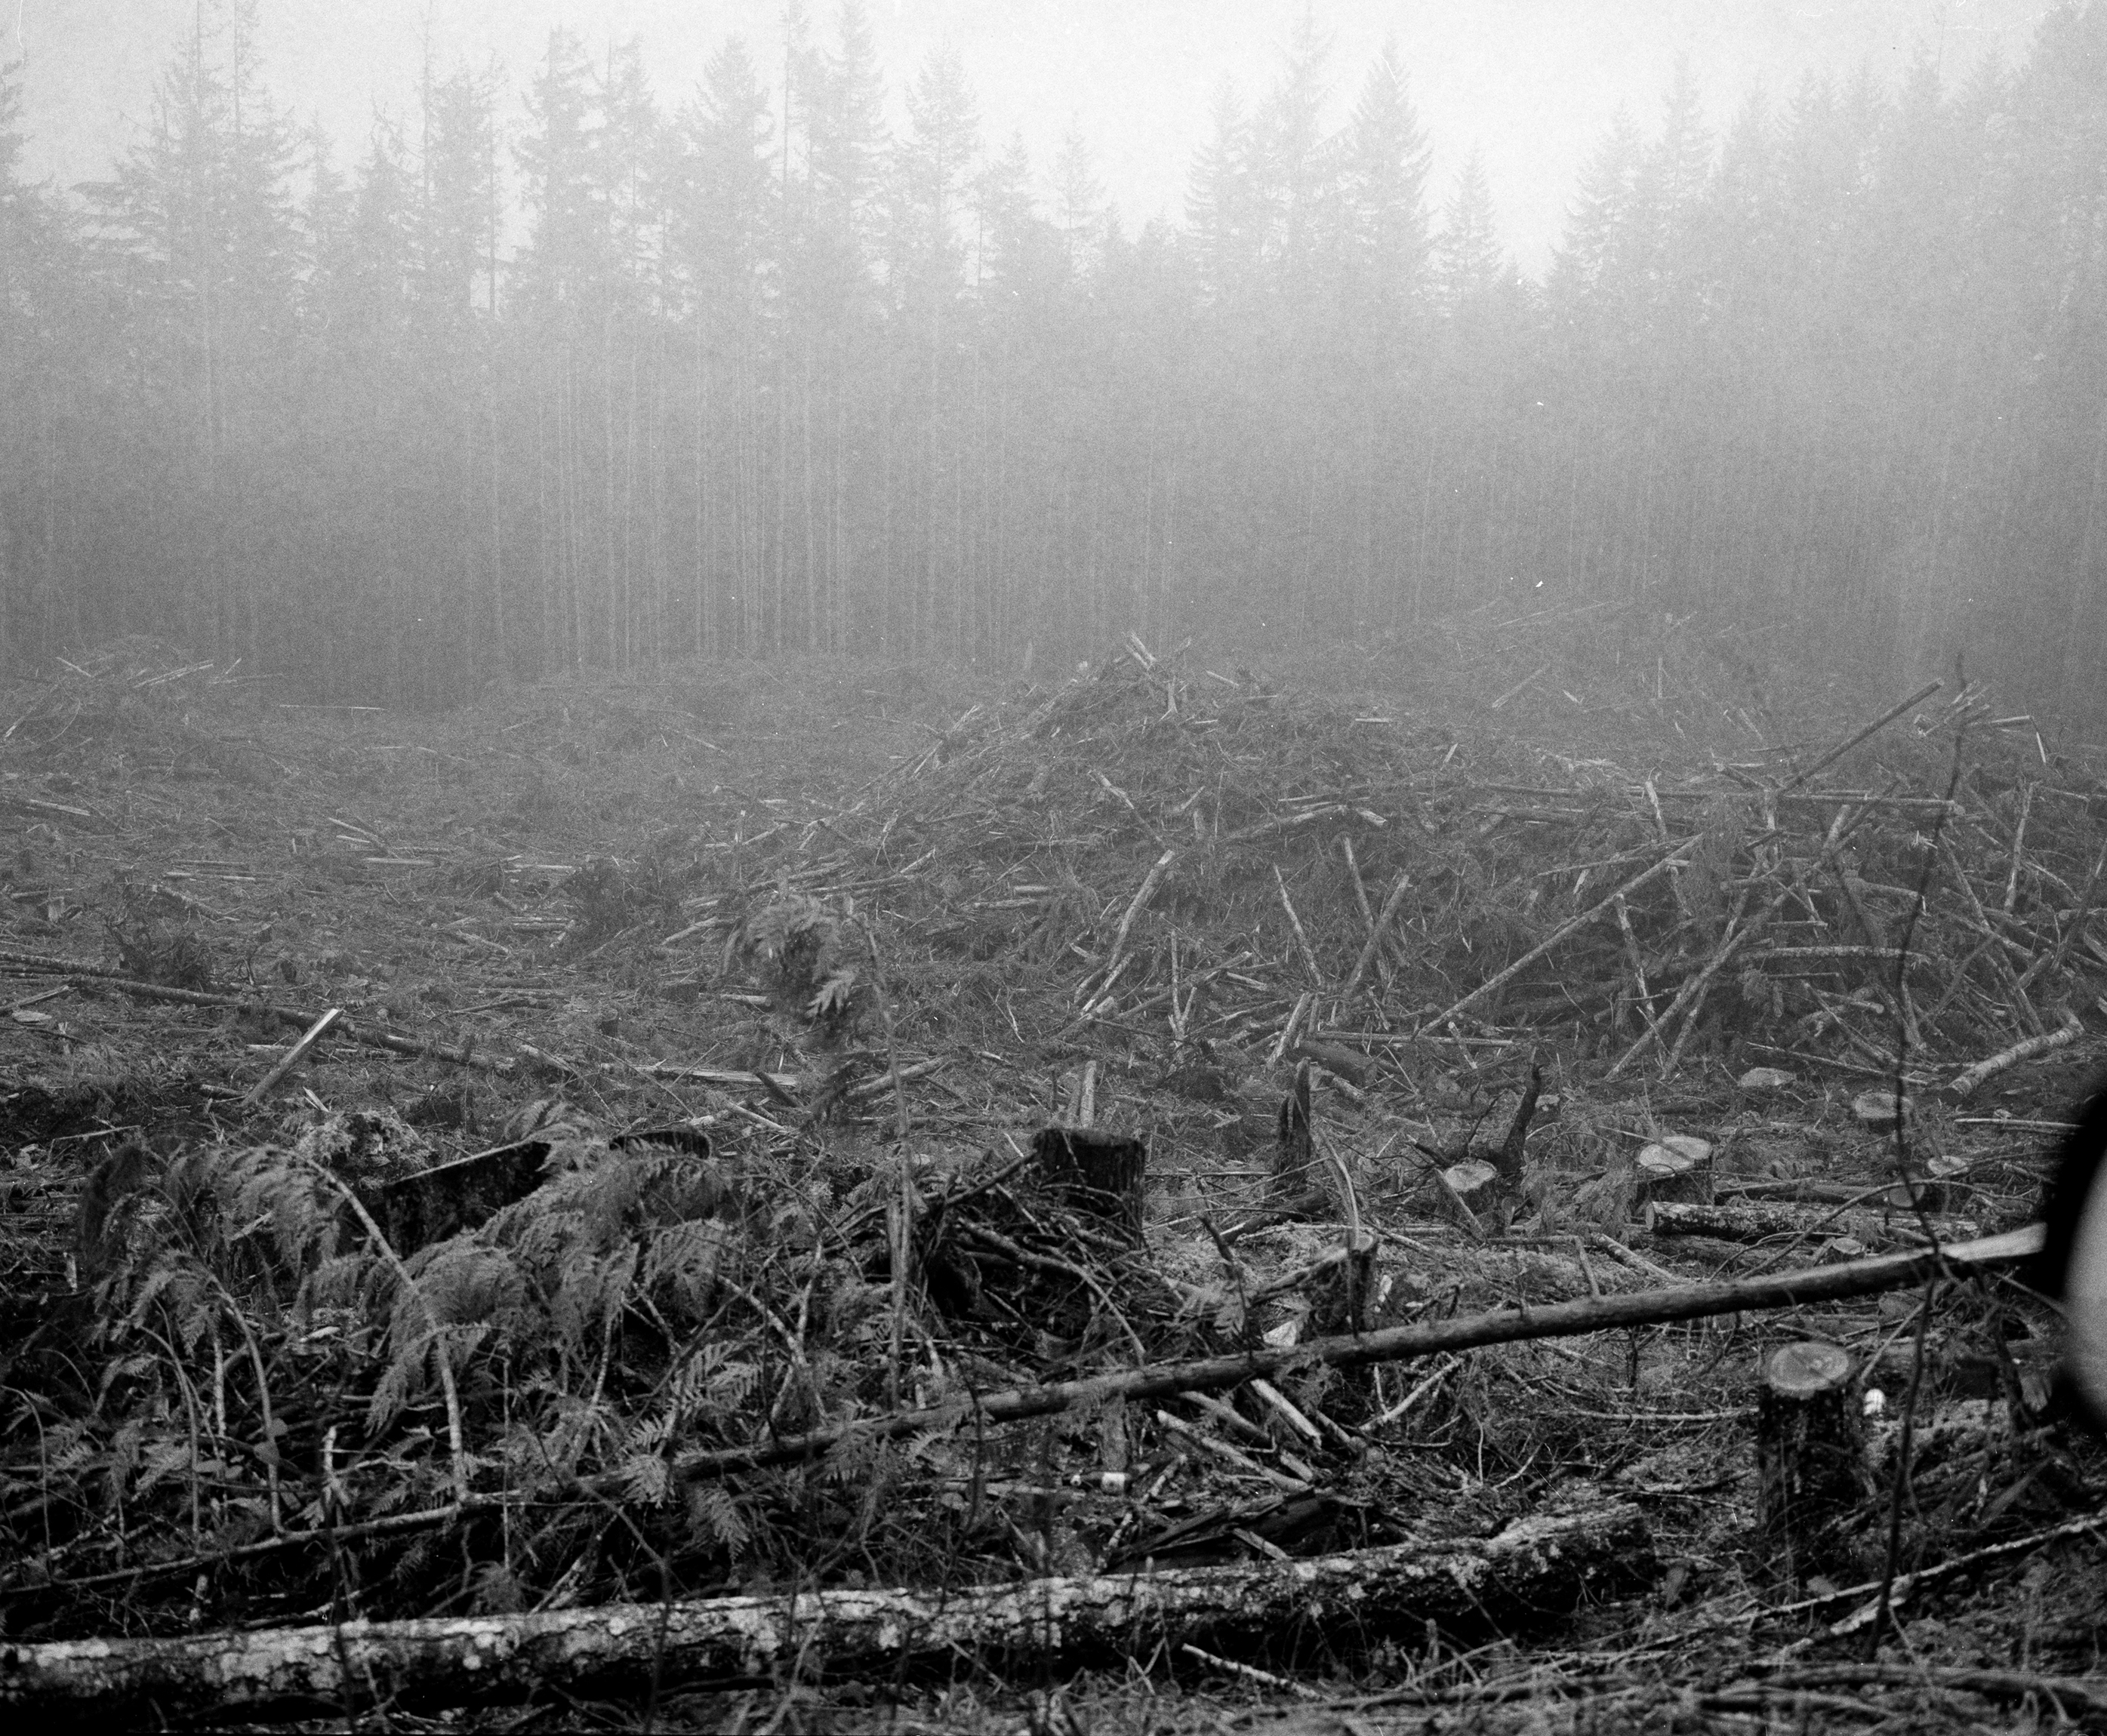 logs, wood chips infront of a forested area covered in mist